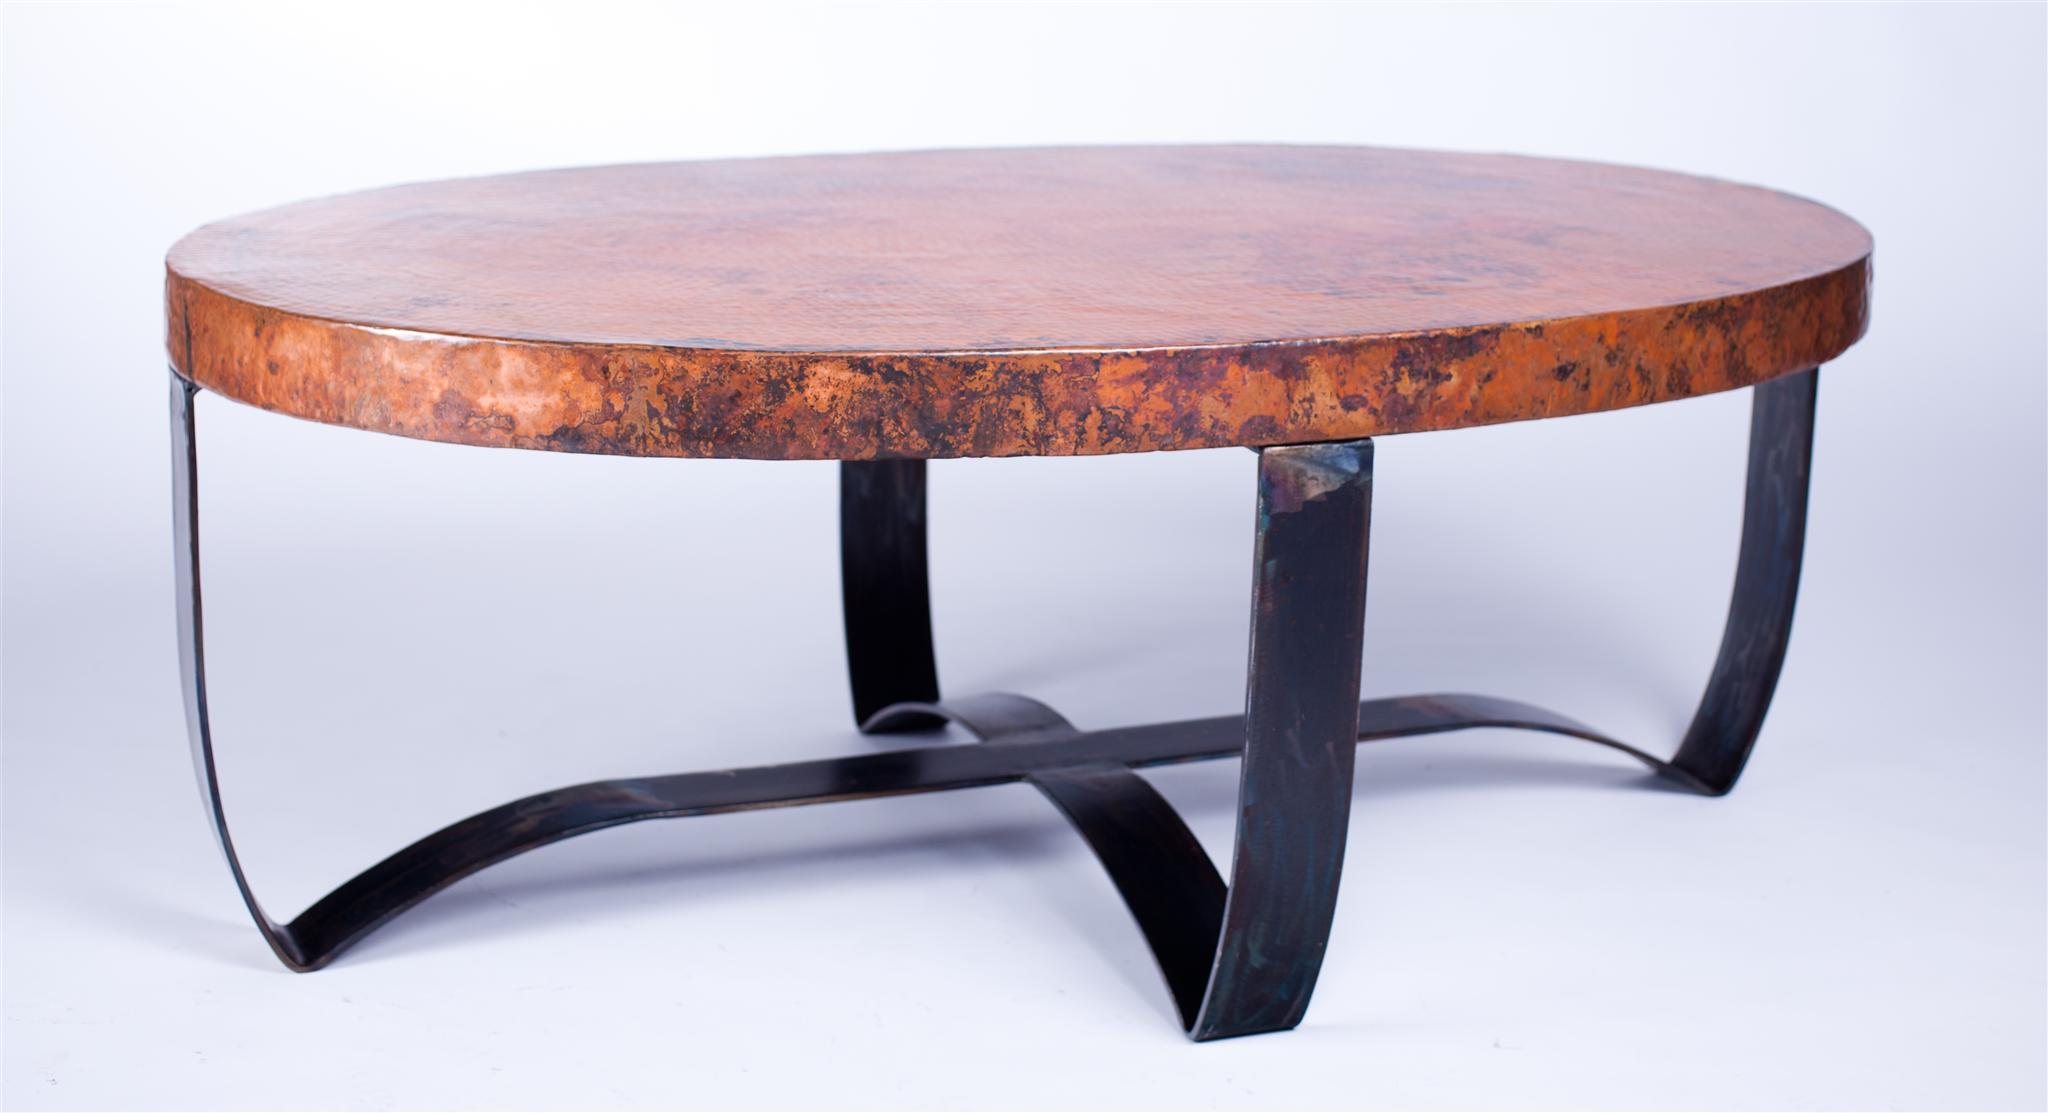 Oval Strap Cocktail Table With Hammered Copper Top